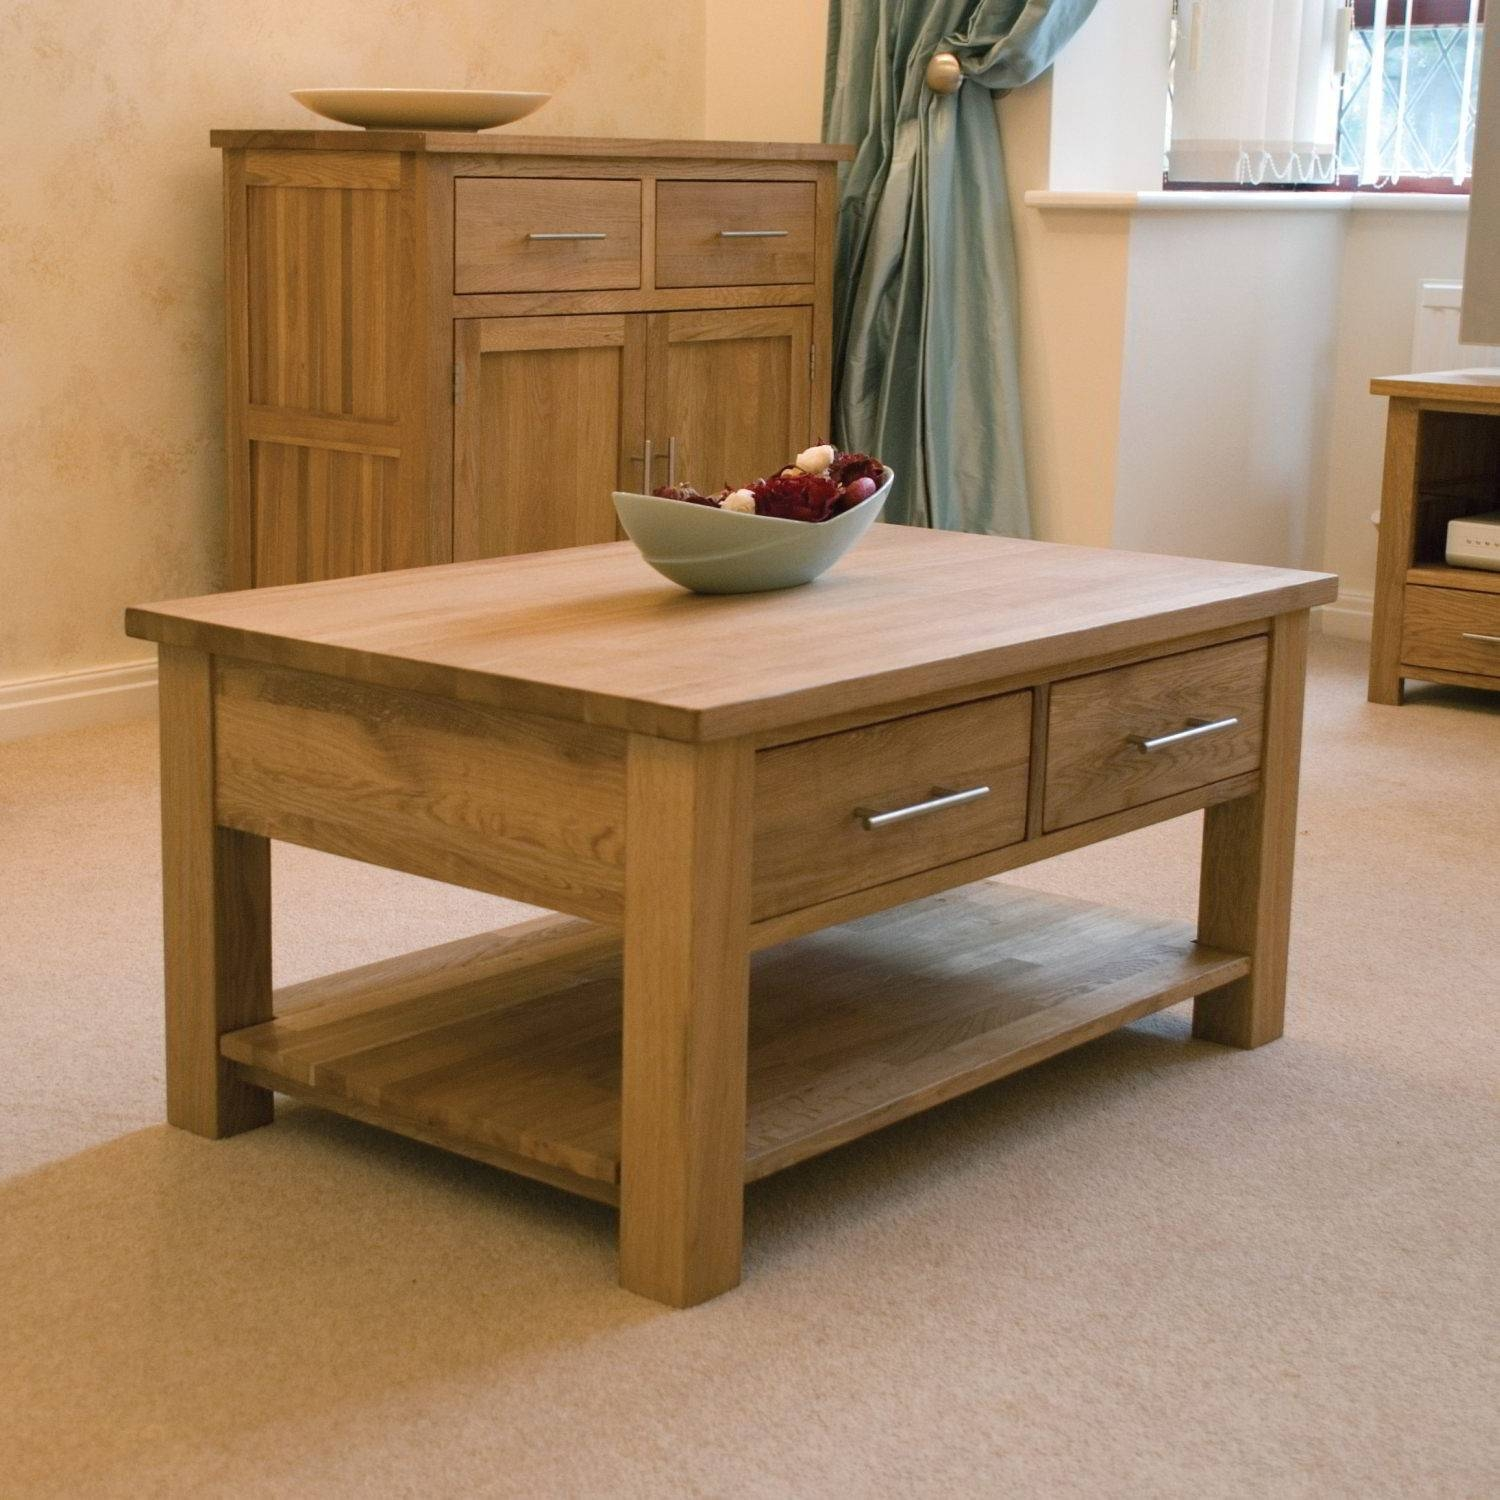 Eton Solid Oak Living Room Lounge Furniture Storage Coffee Table Intended For Small Oak Coffee Tables (View 4 of 15)